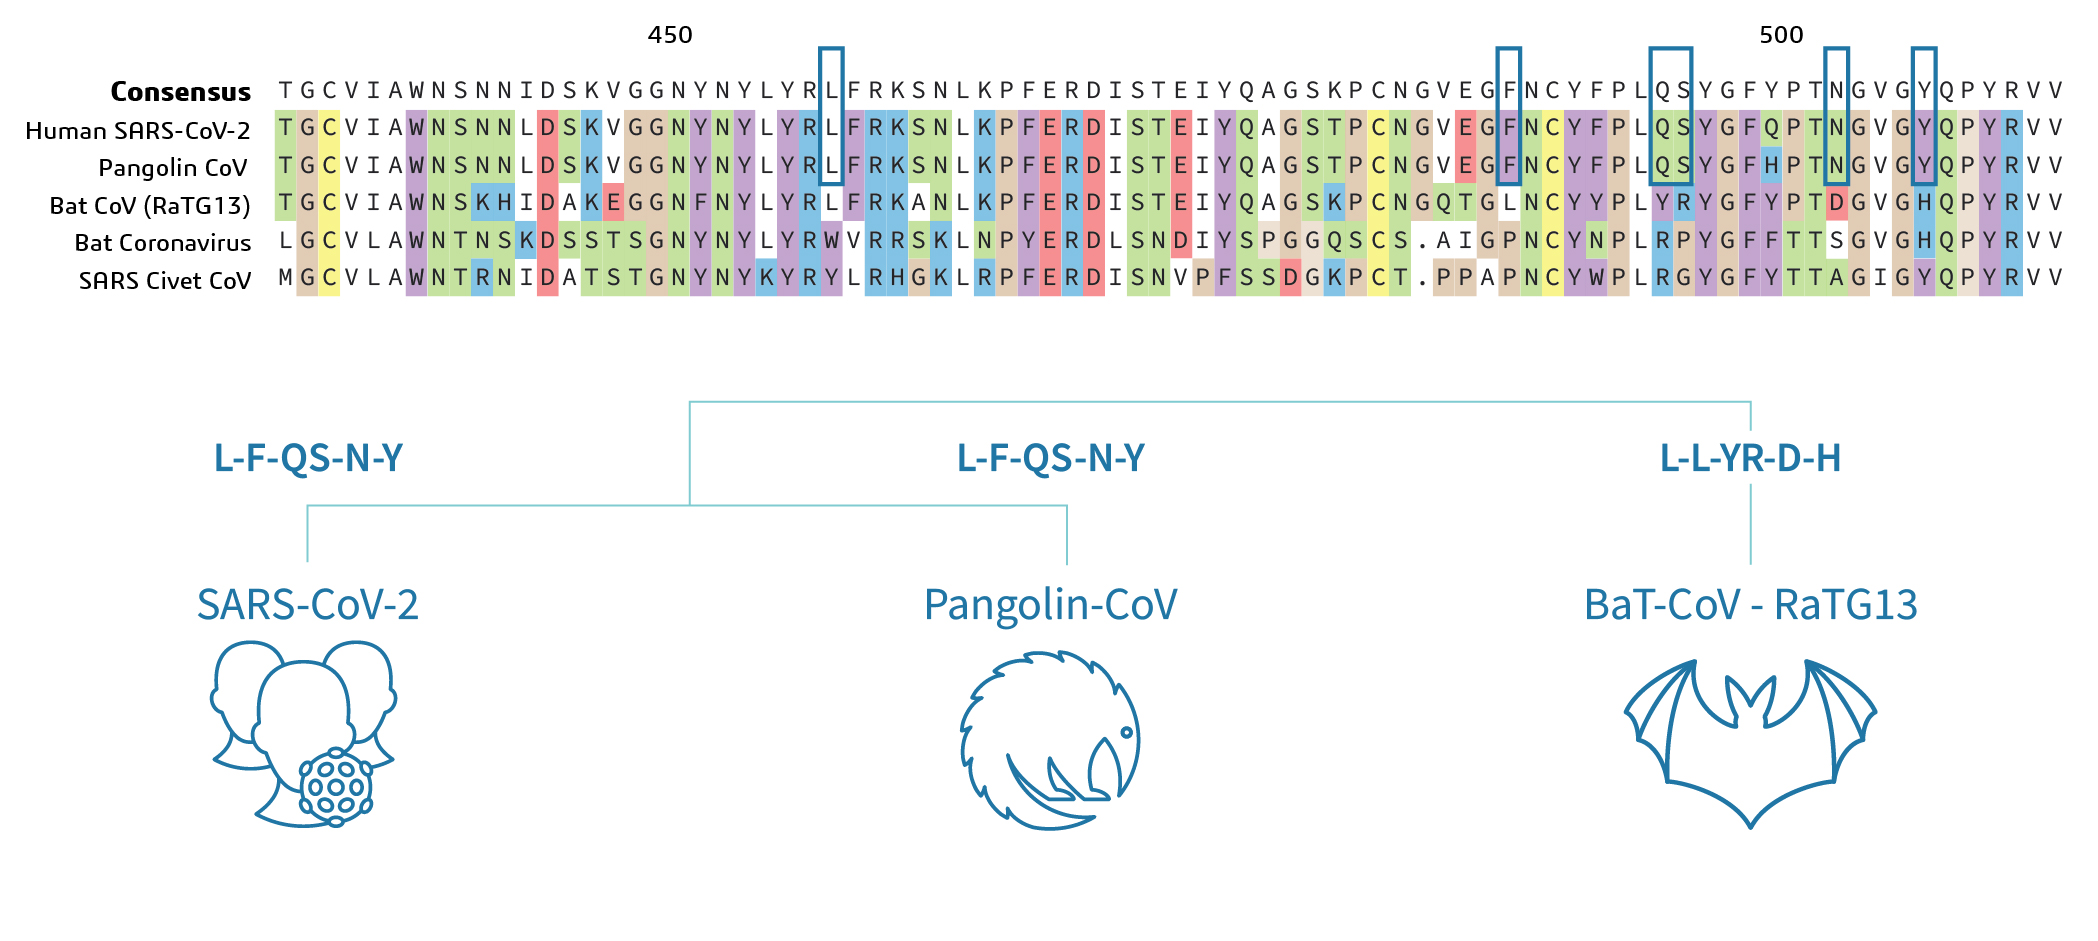 Figure 2a: Multiple Sequence alignment of Spike protein of Human, Bat and Pangolin SARS-CoV-2. Key residues for Receptor binding in blue boxes and cartoon below (2b).